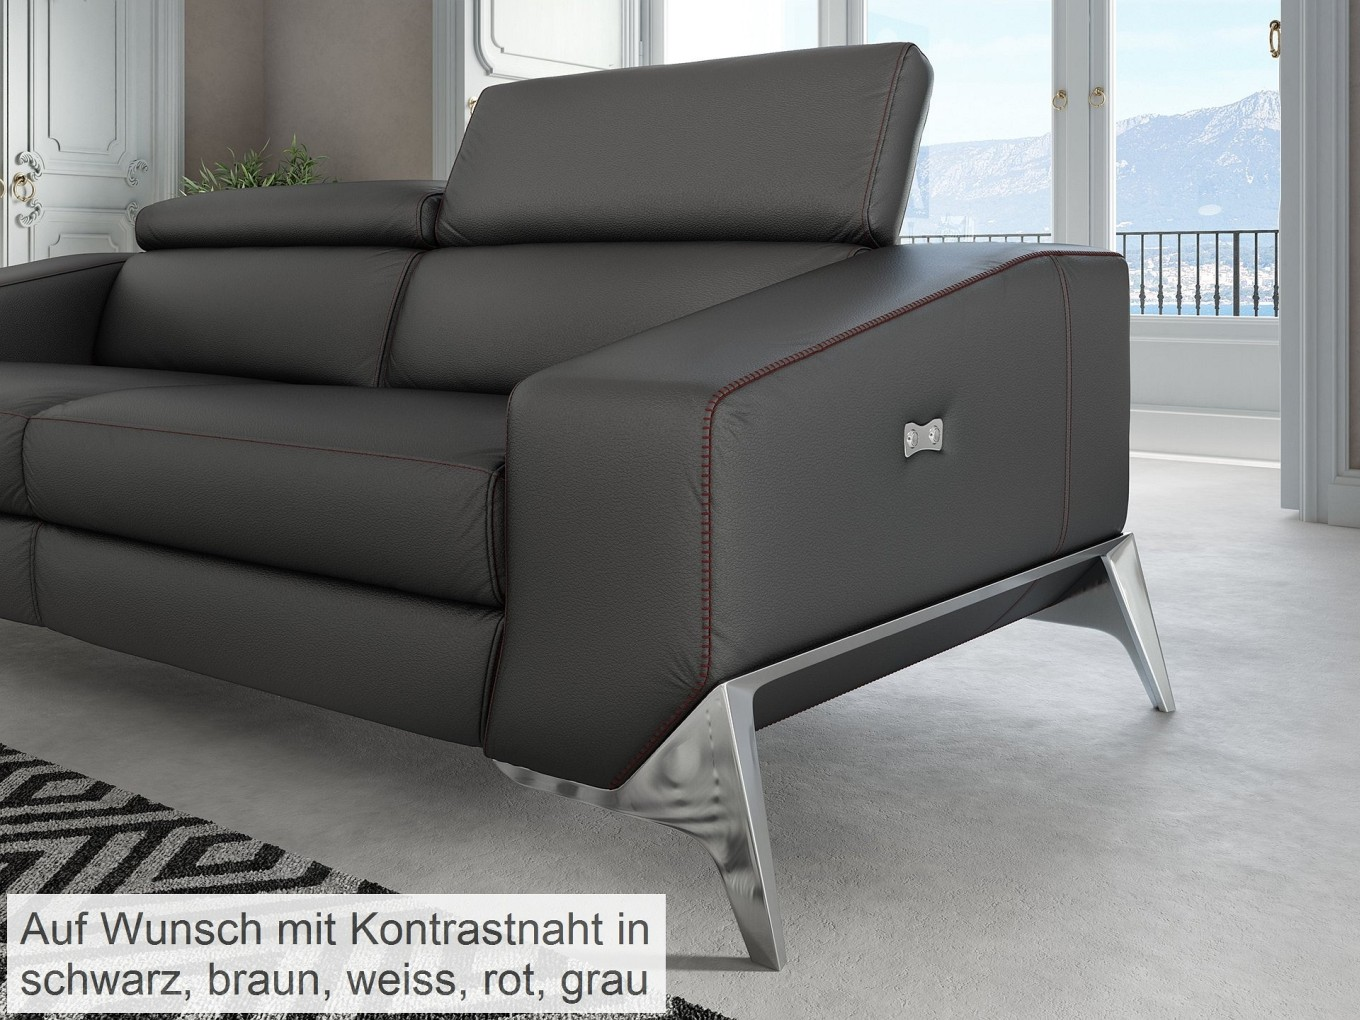 sofa leder schwarz rolf benz 322 designer sofa schwarz. Black Bedroom Furniture Sets. Home Design Ideas